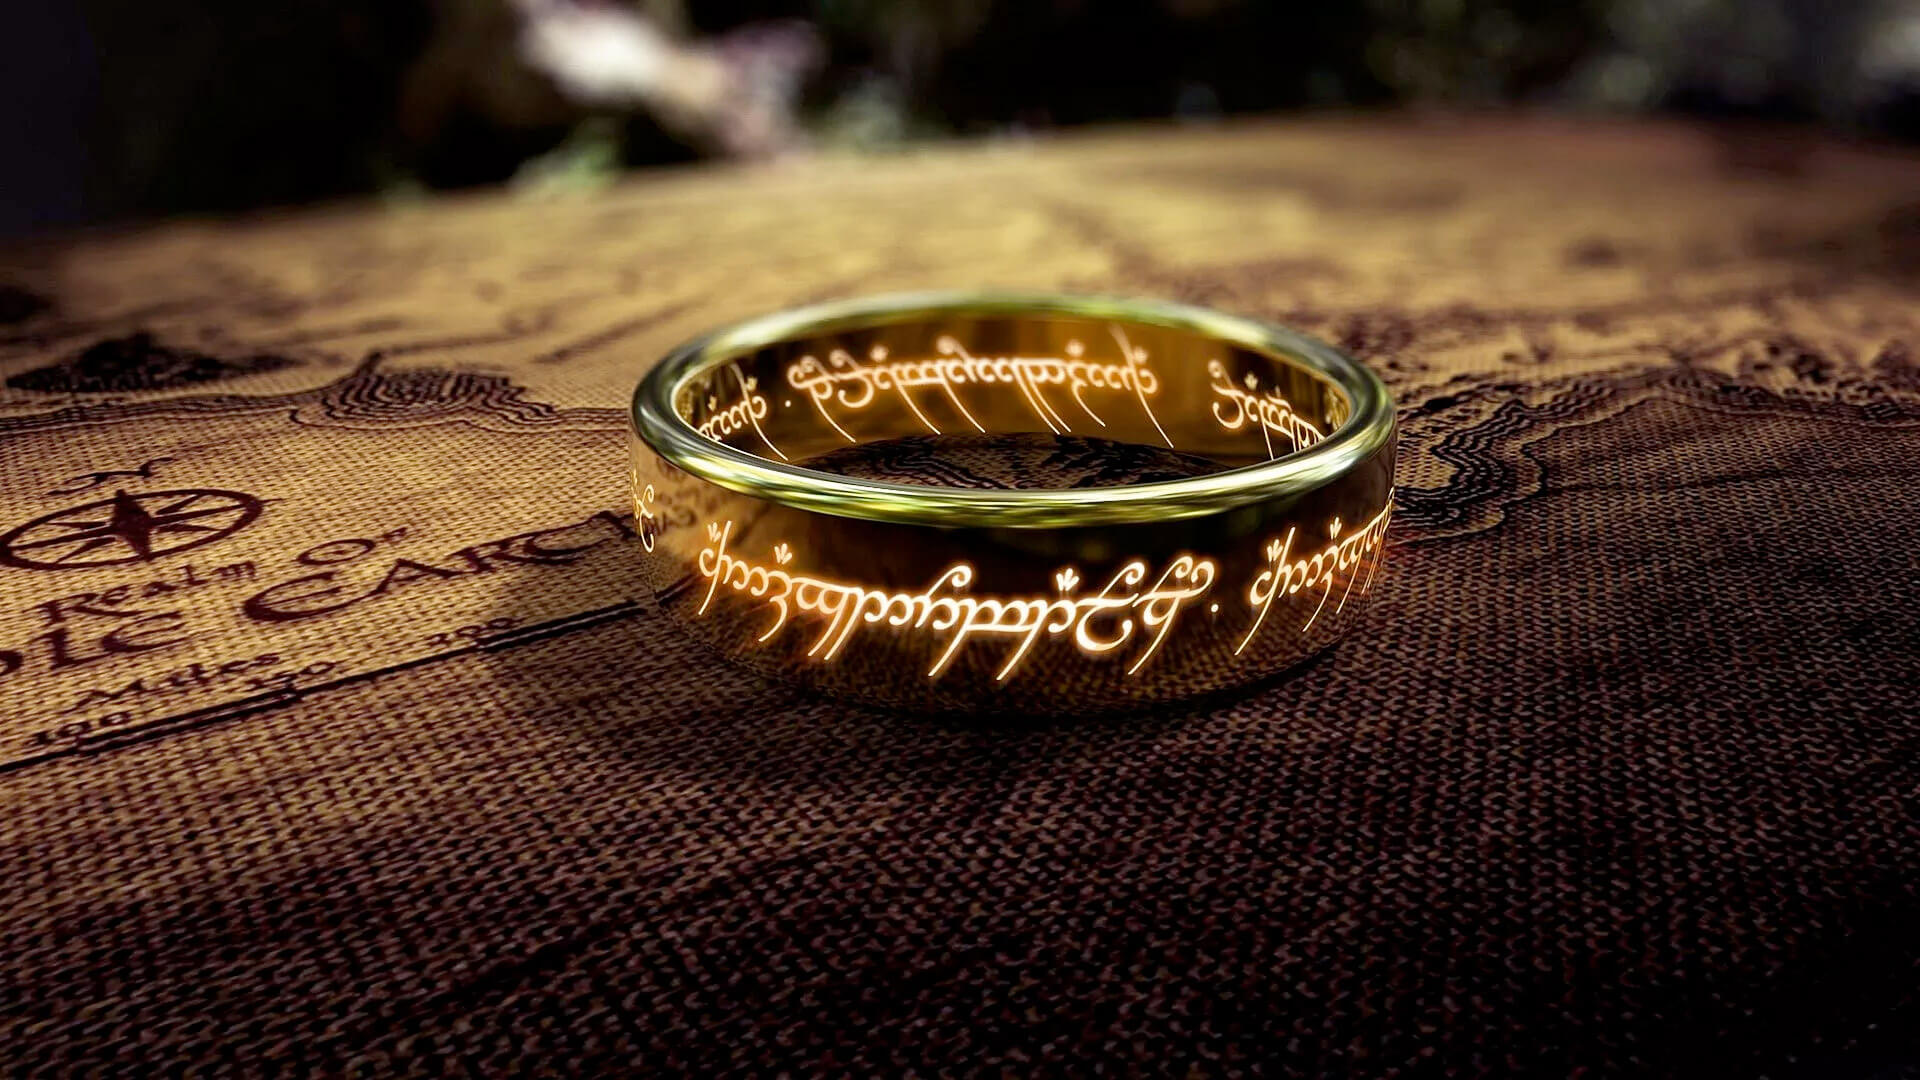 Lord of the Rings Series Adds Wayne Che Yip as Director